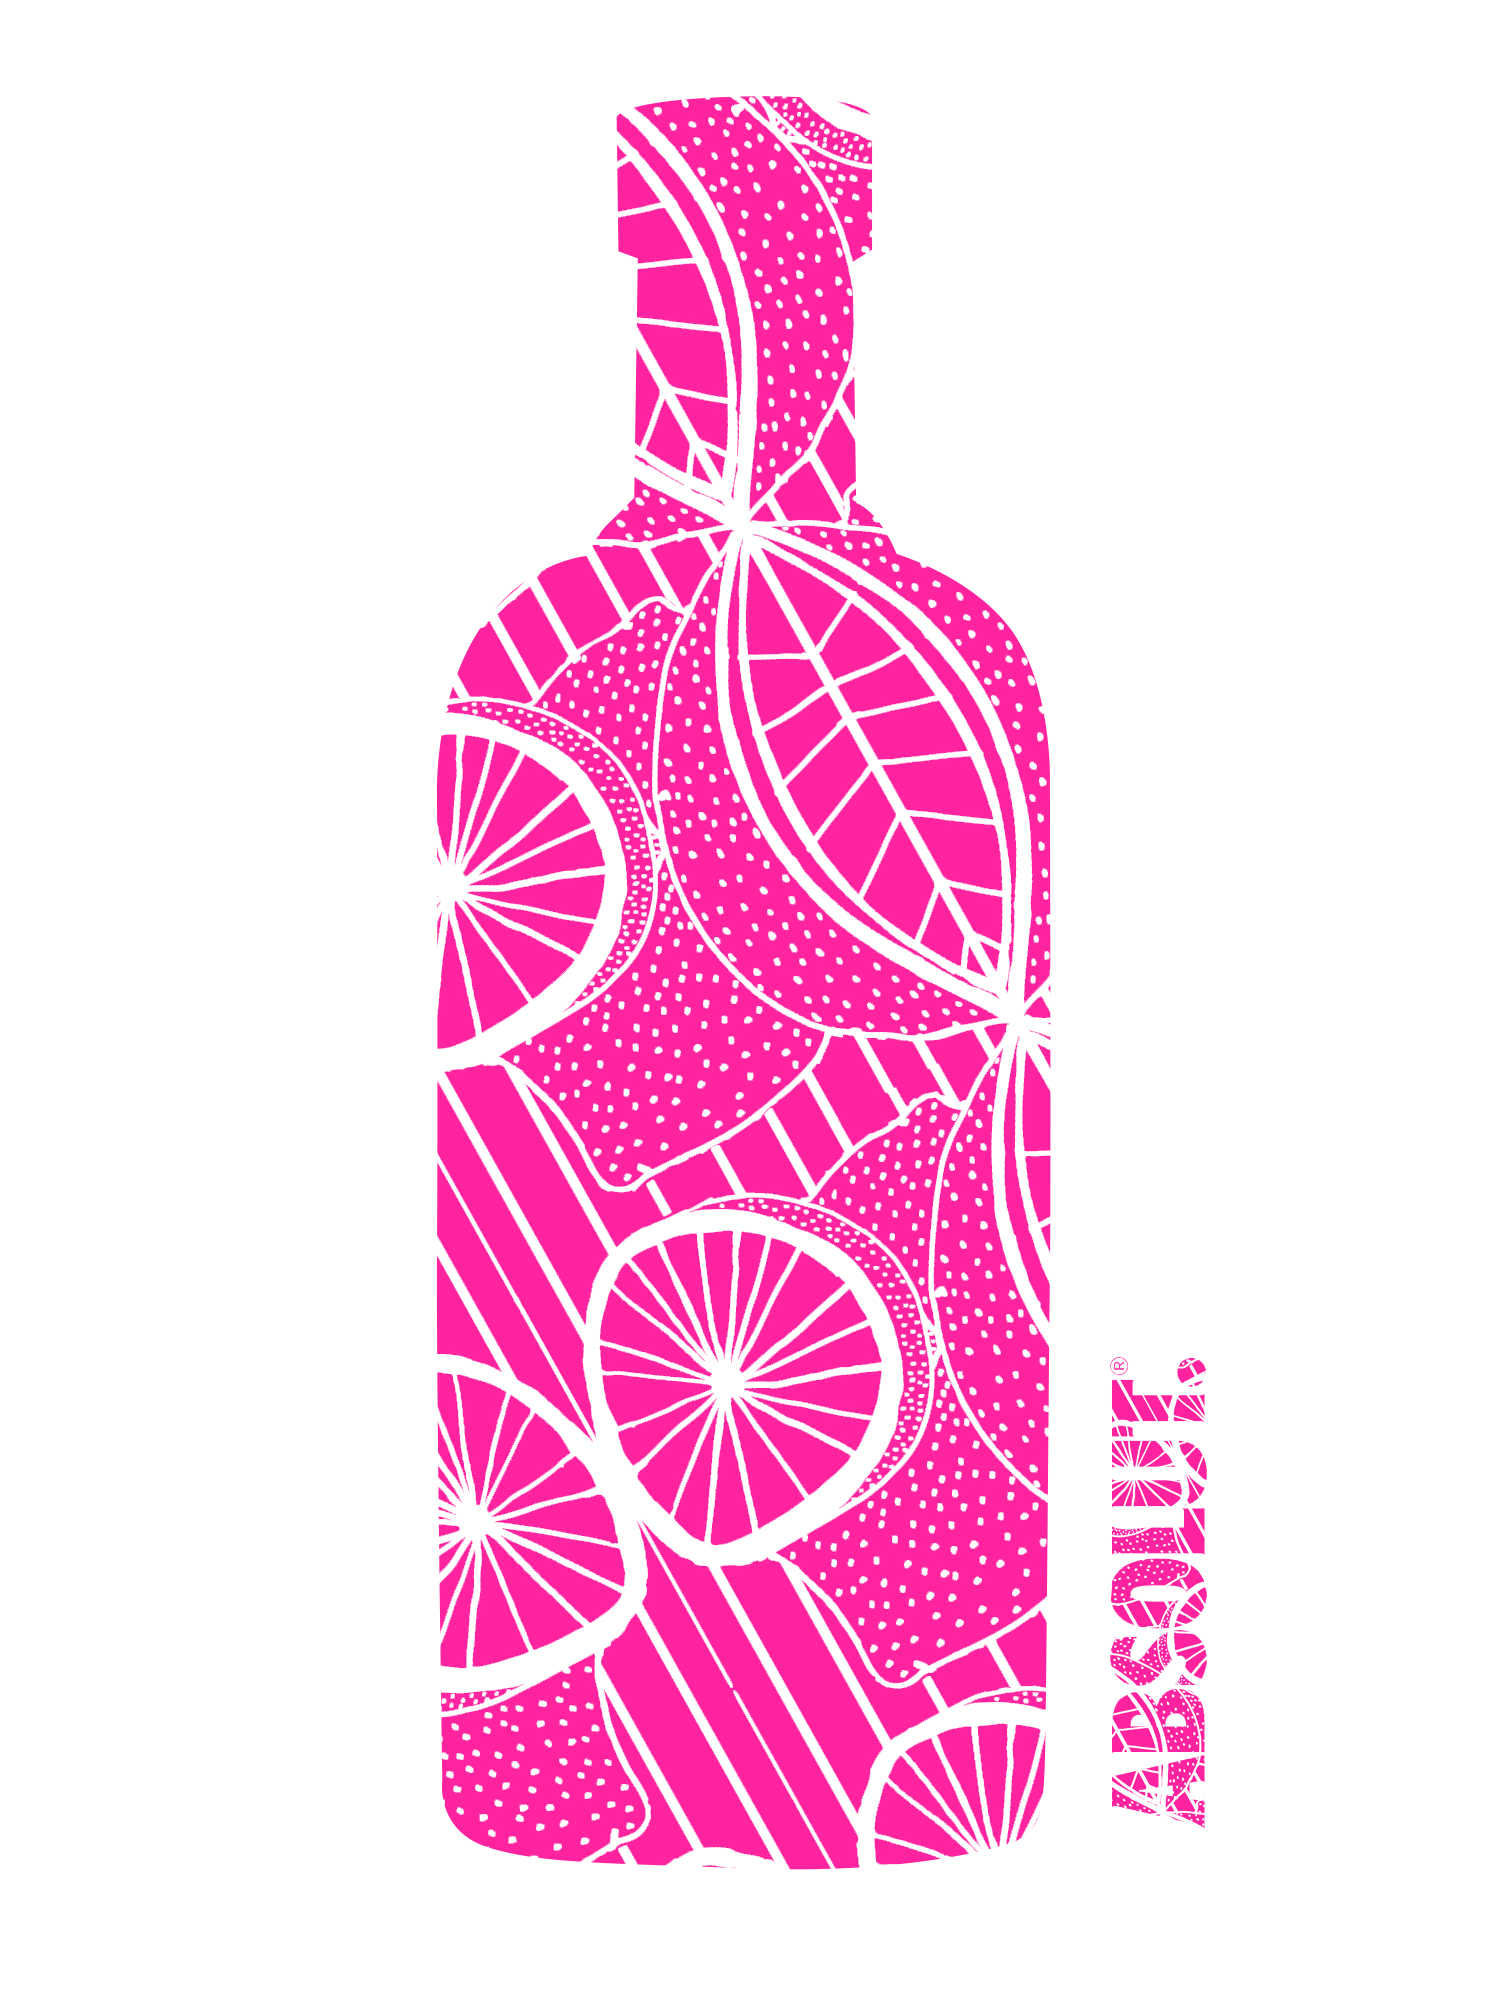 Absolut Vodka - Contest Entry